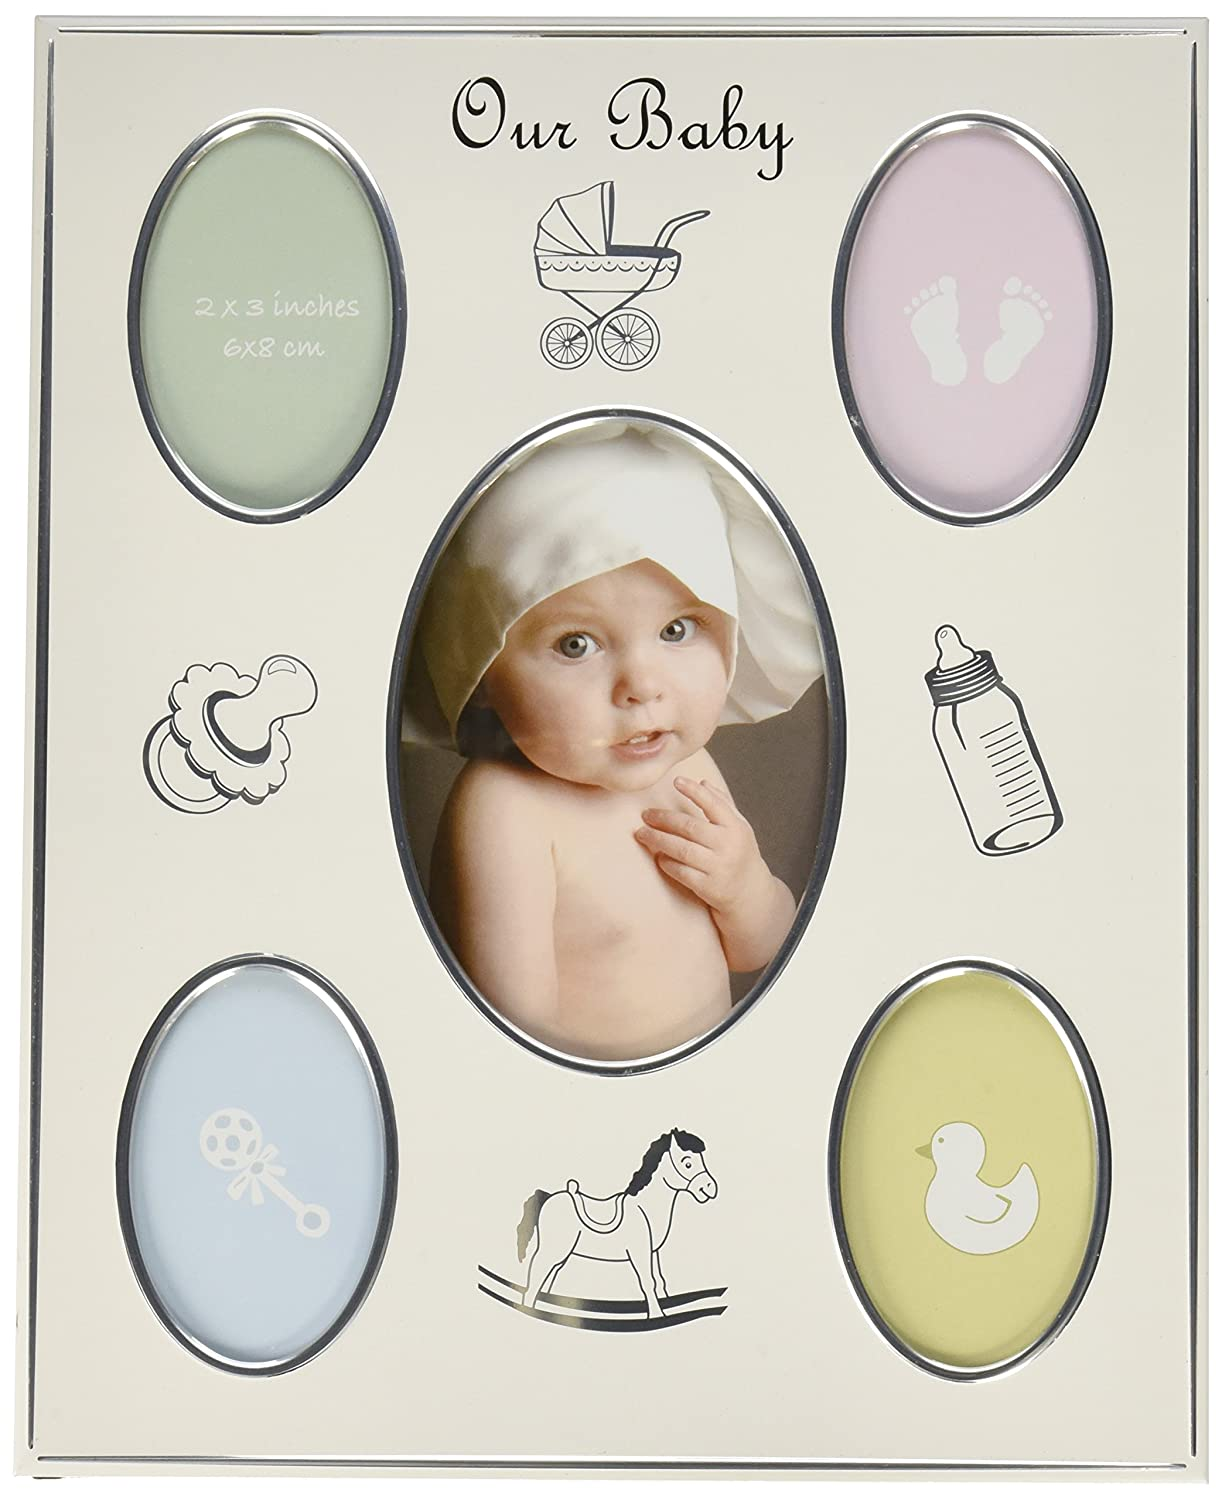 Fashioncraft Baby Collage Aluminum Frame from Gifts 12542